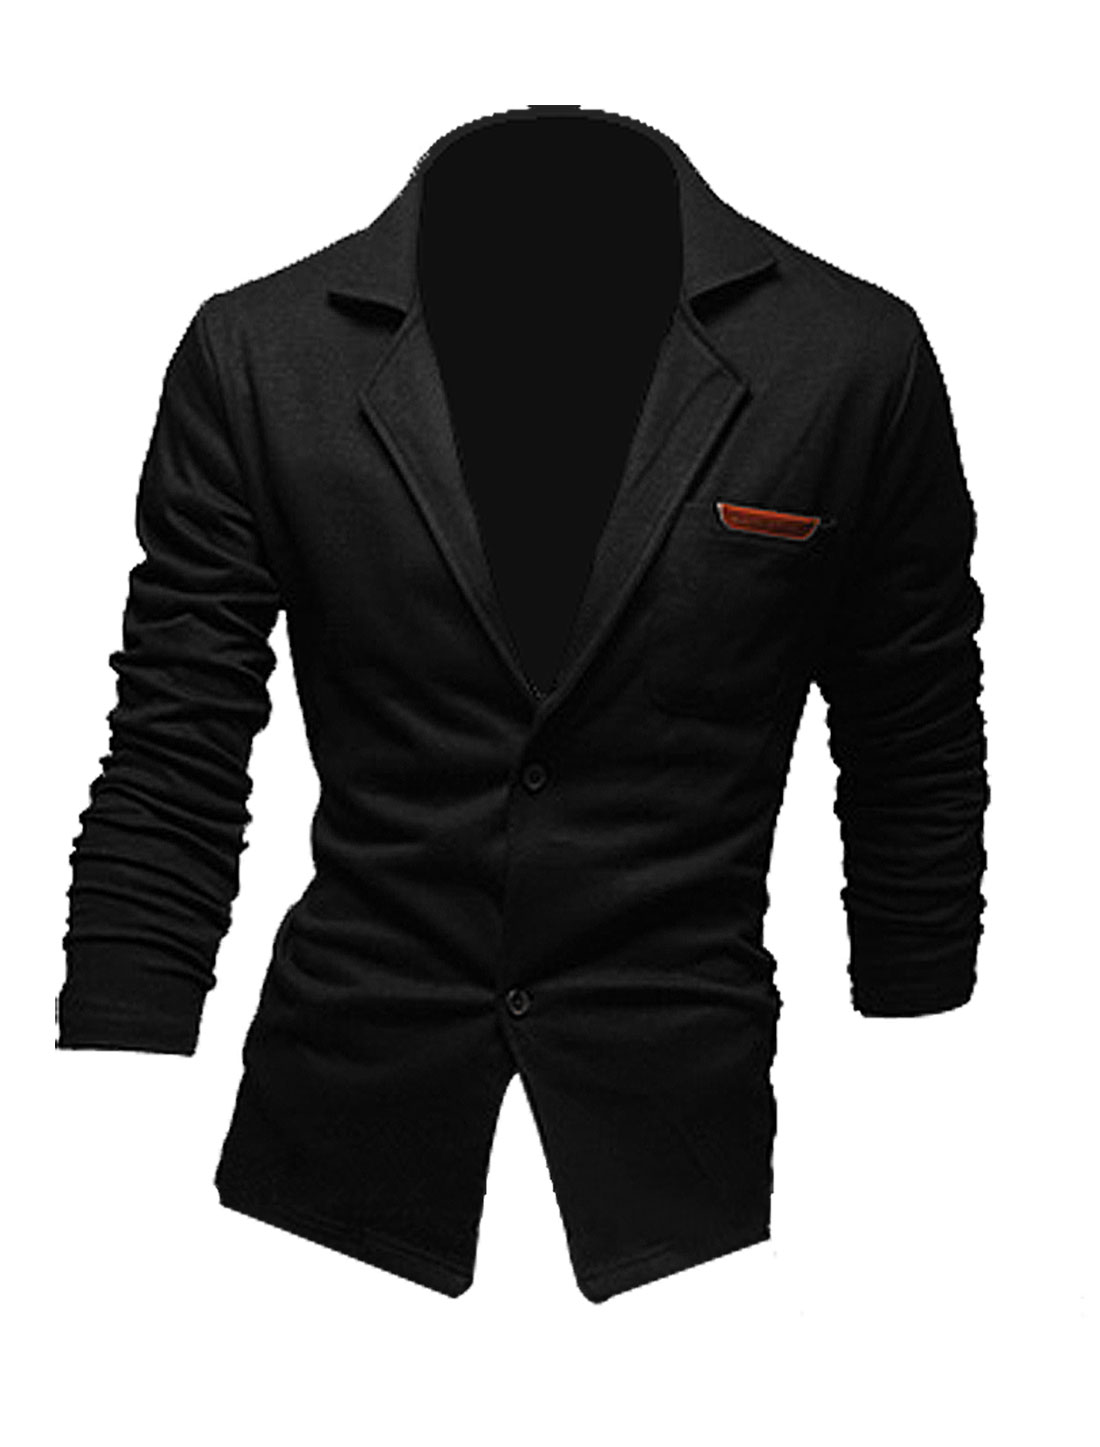 Men Peaked Lapel Single Breasted Chest Pocket Blazer Black M